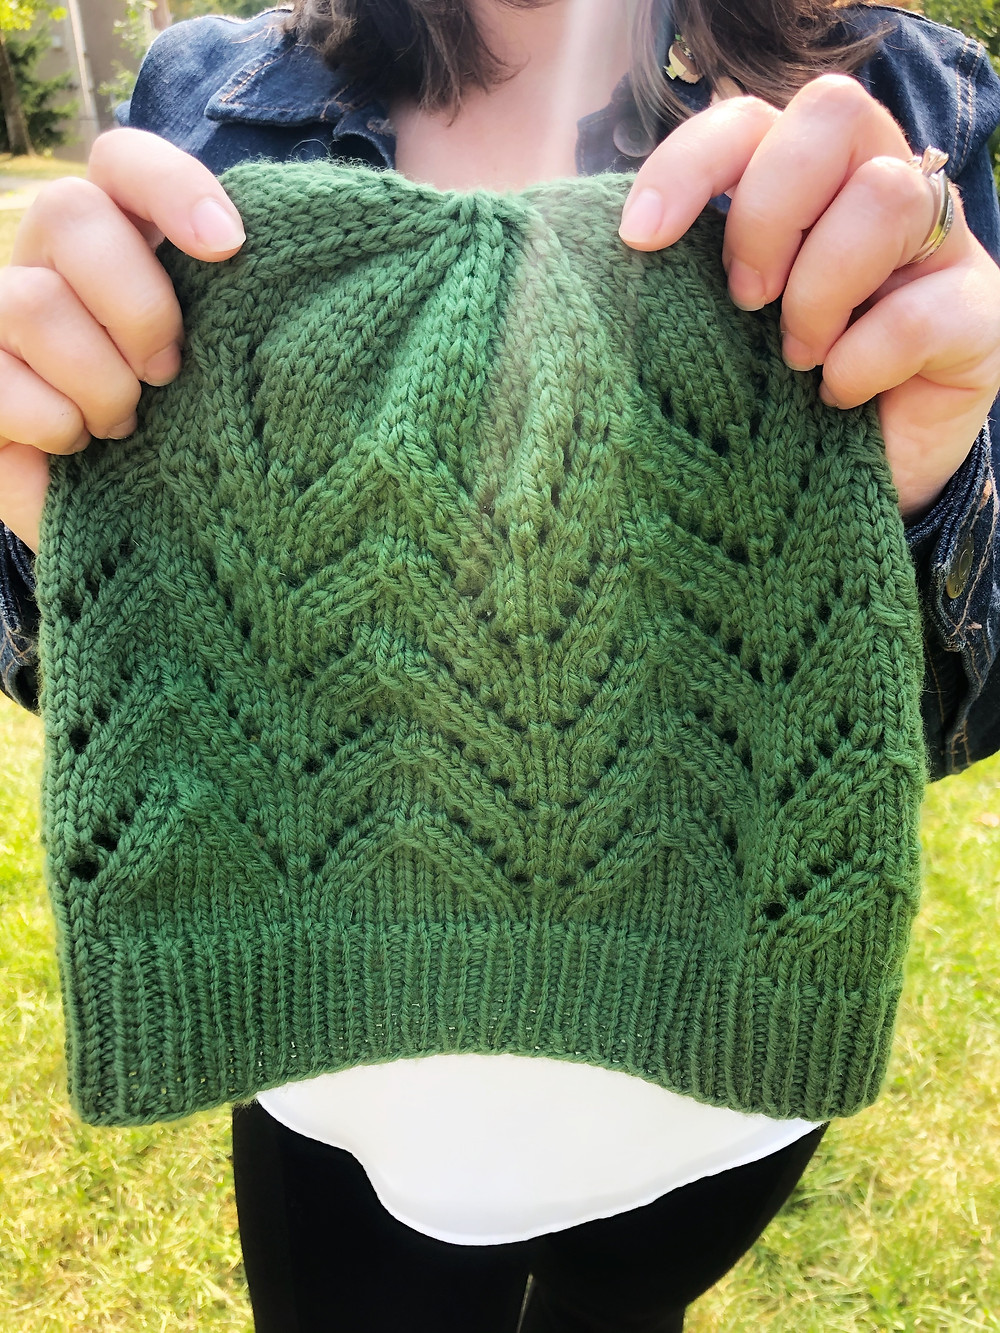 A close up of a woman holding a green knit hat with lace stitches in her hands.